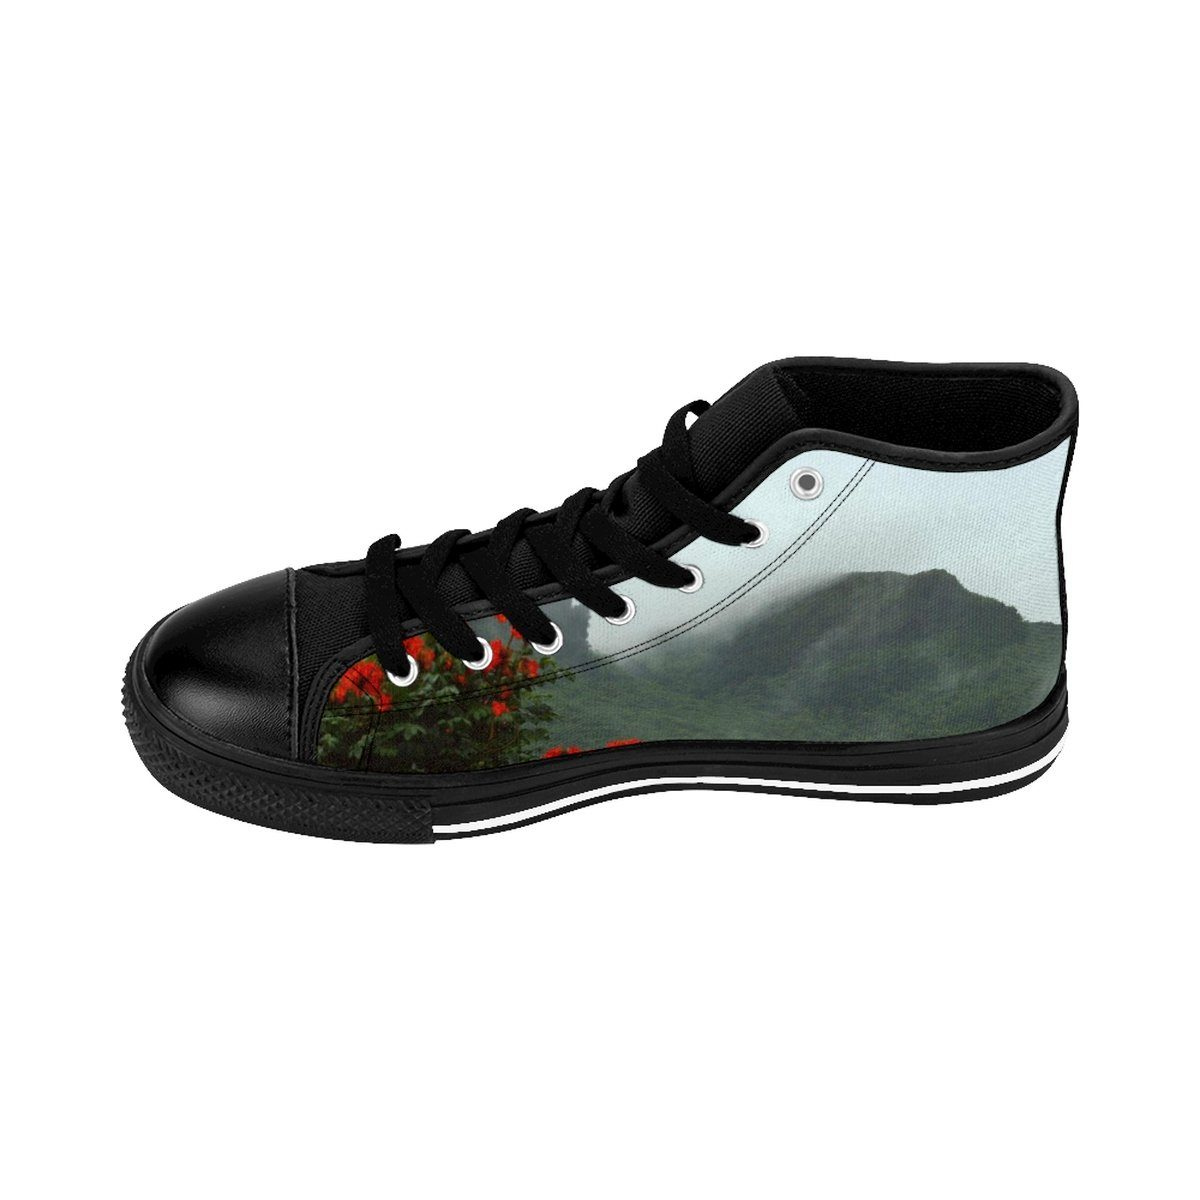 Women's High-top Sneakers - View from Yokahu tower after storm - El Yunque rain forest PR Shoes Printify